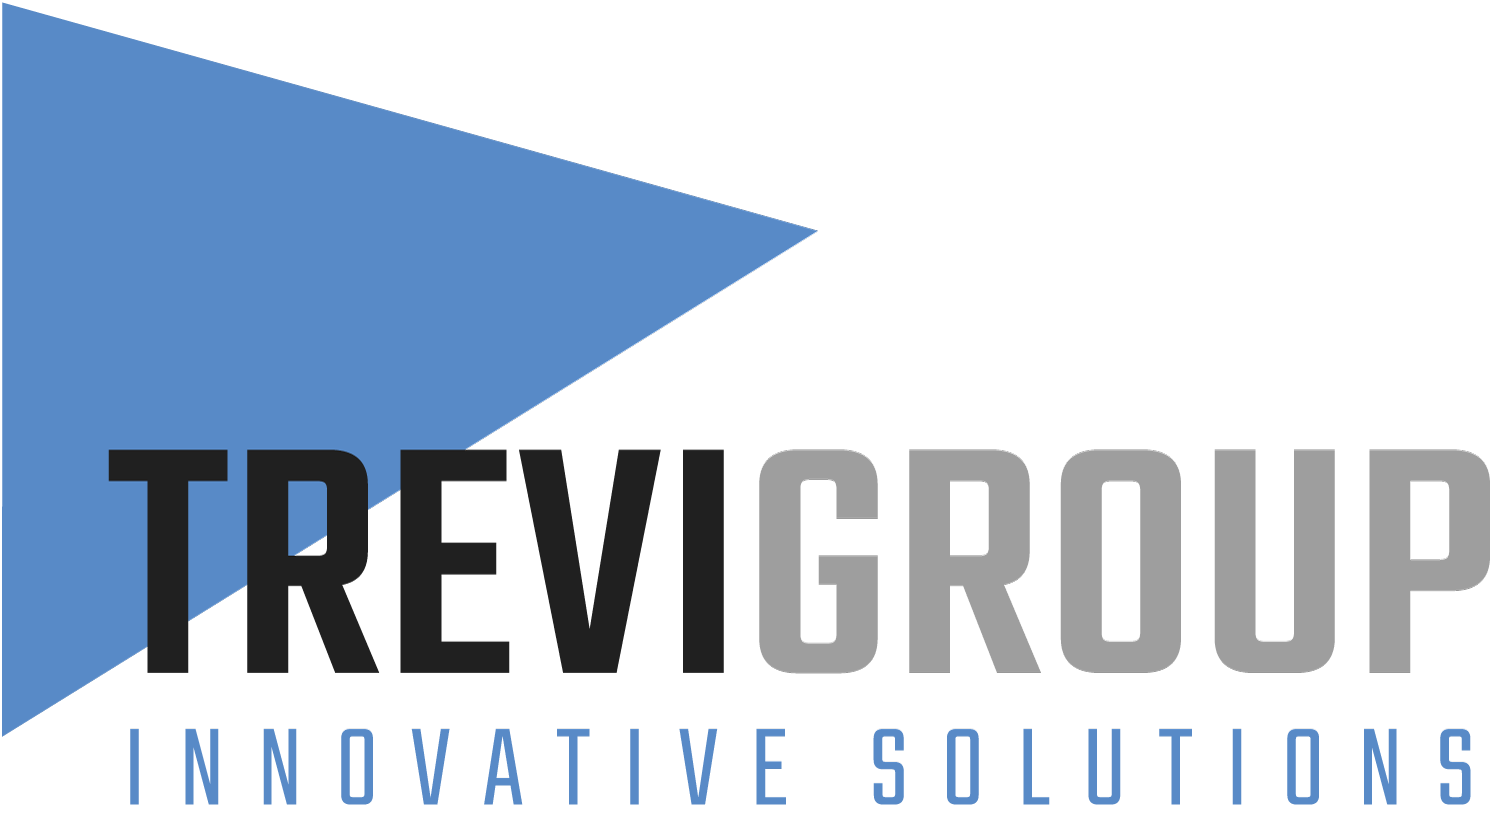 Trevigroup